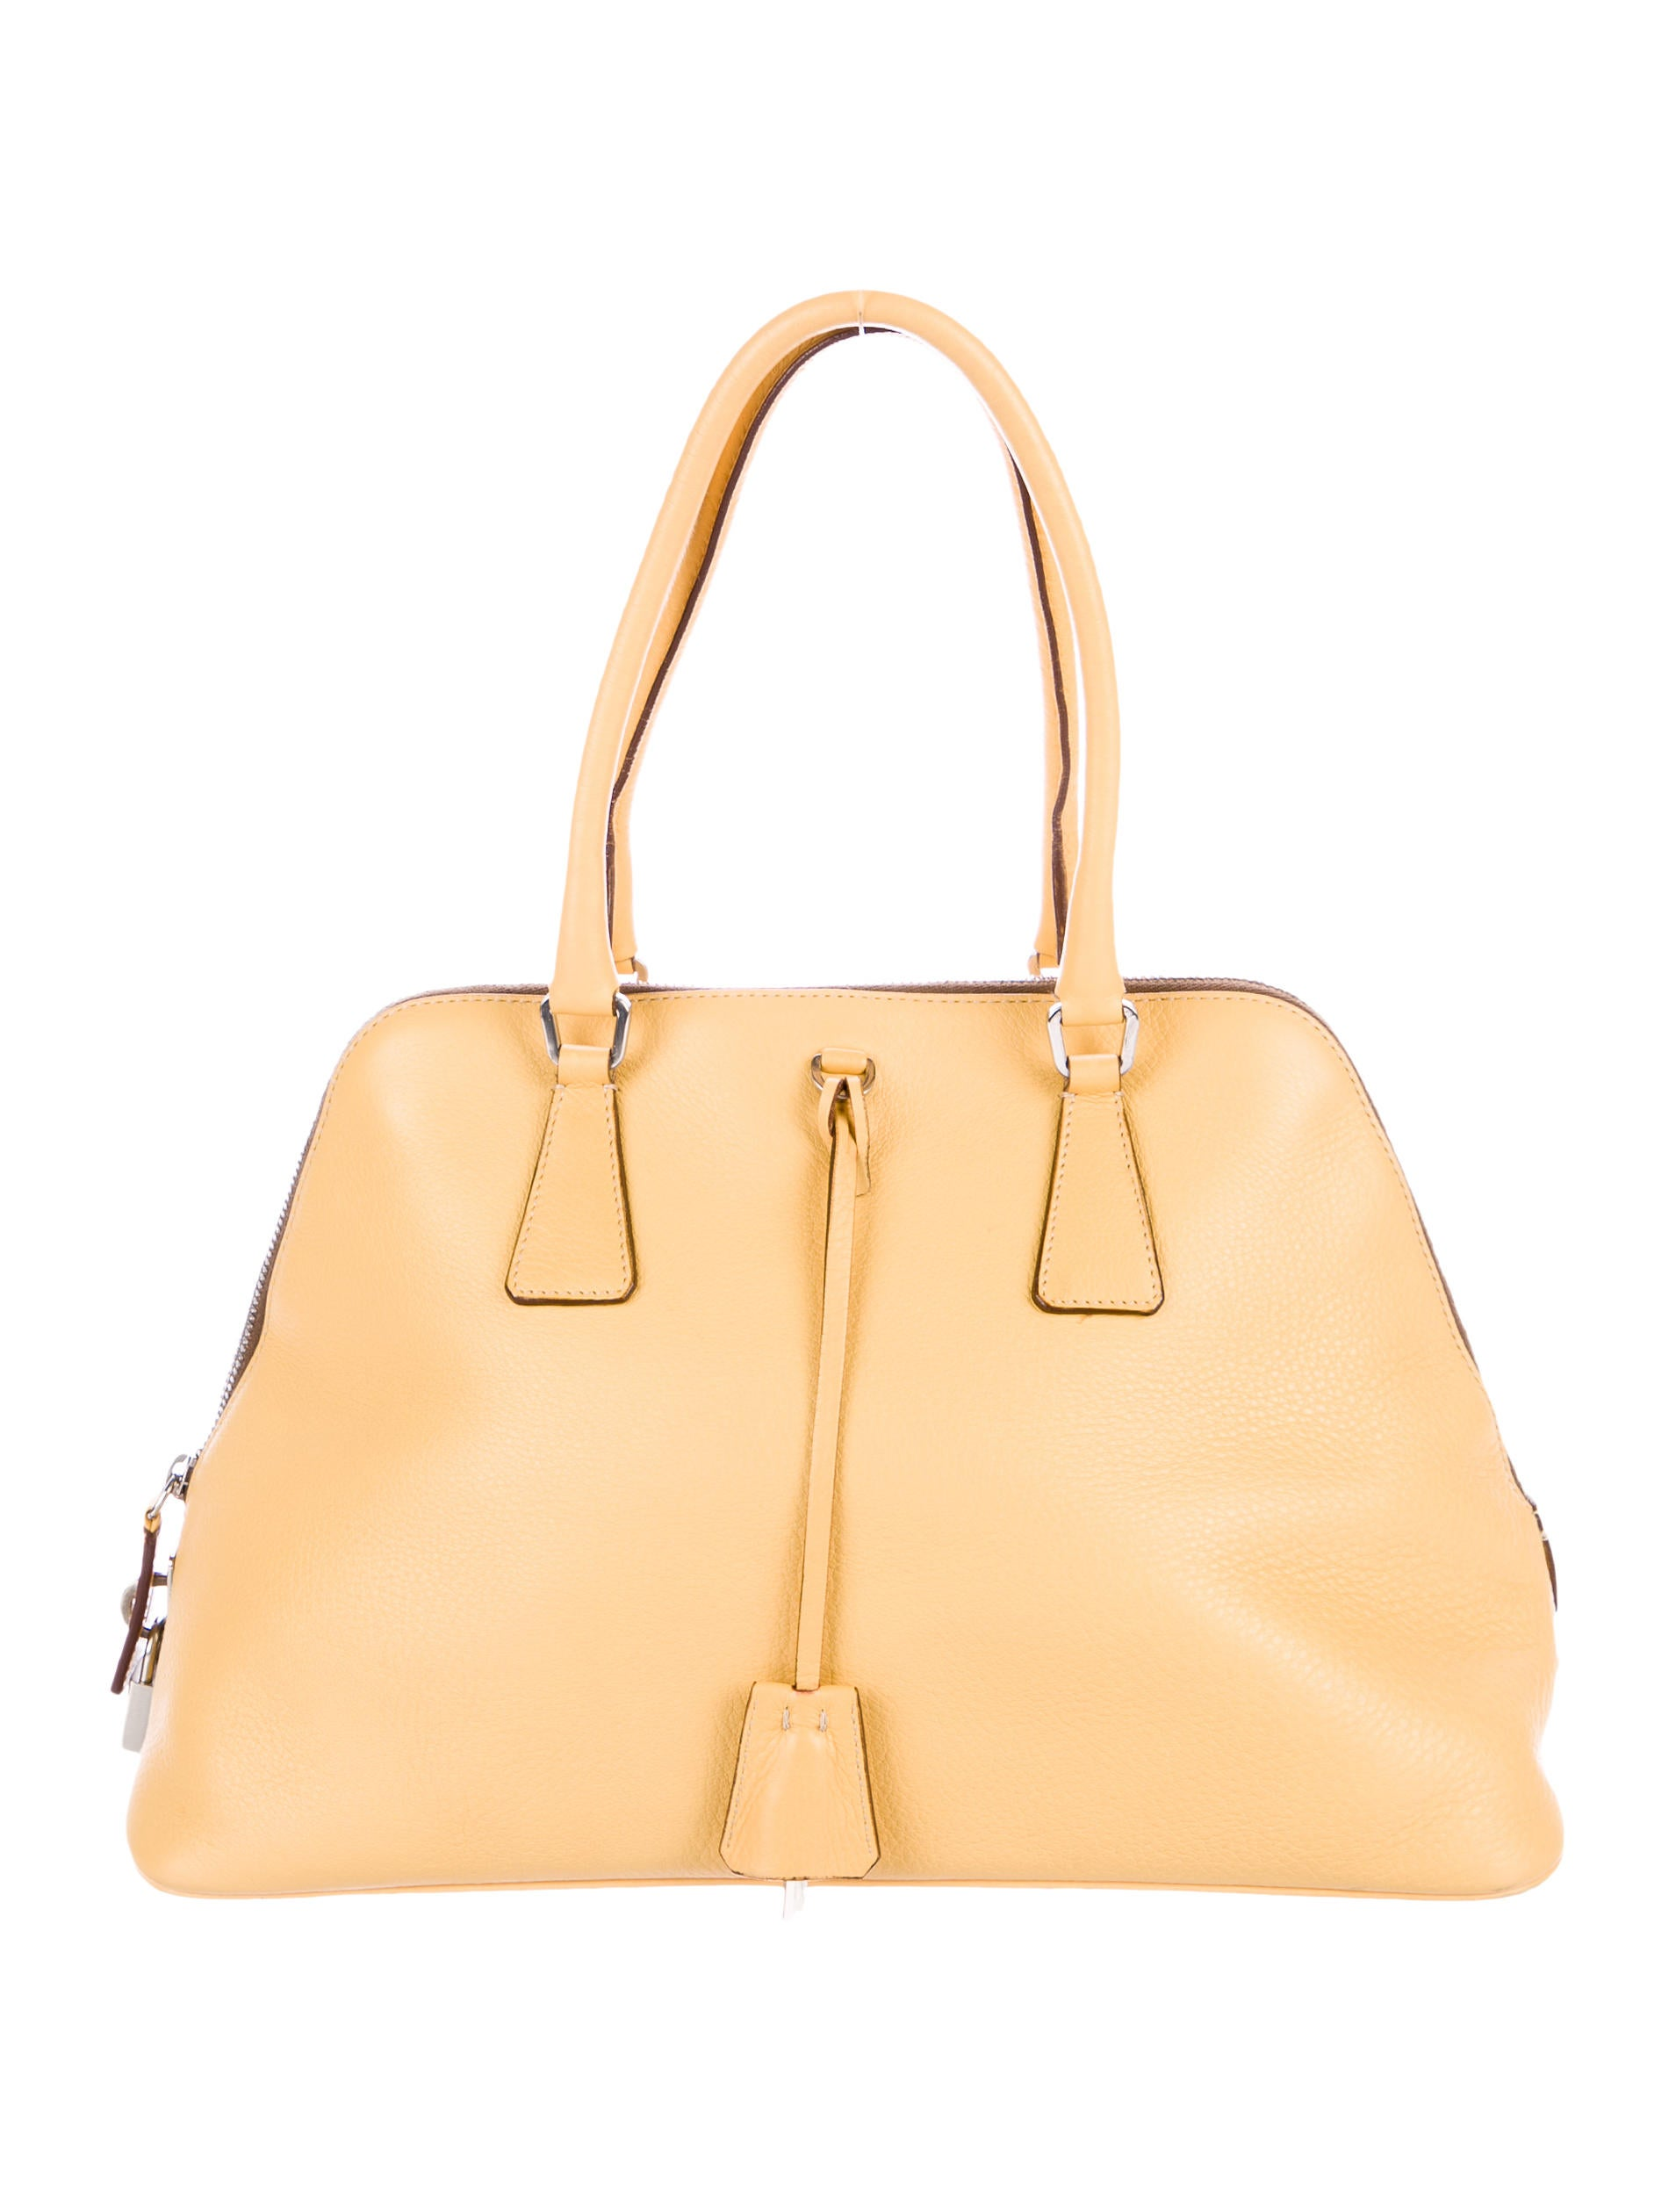 63a1db561d66 Prada Vitello Daino Dome Shoulder Bag - Handbags - PRA186872